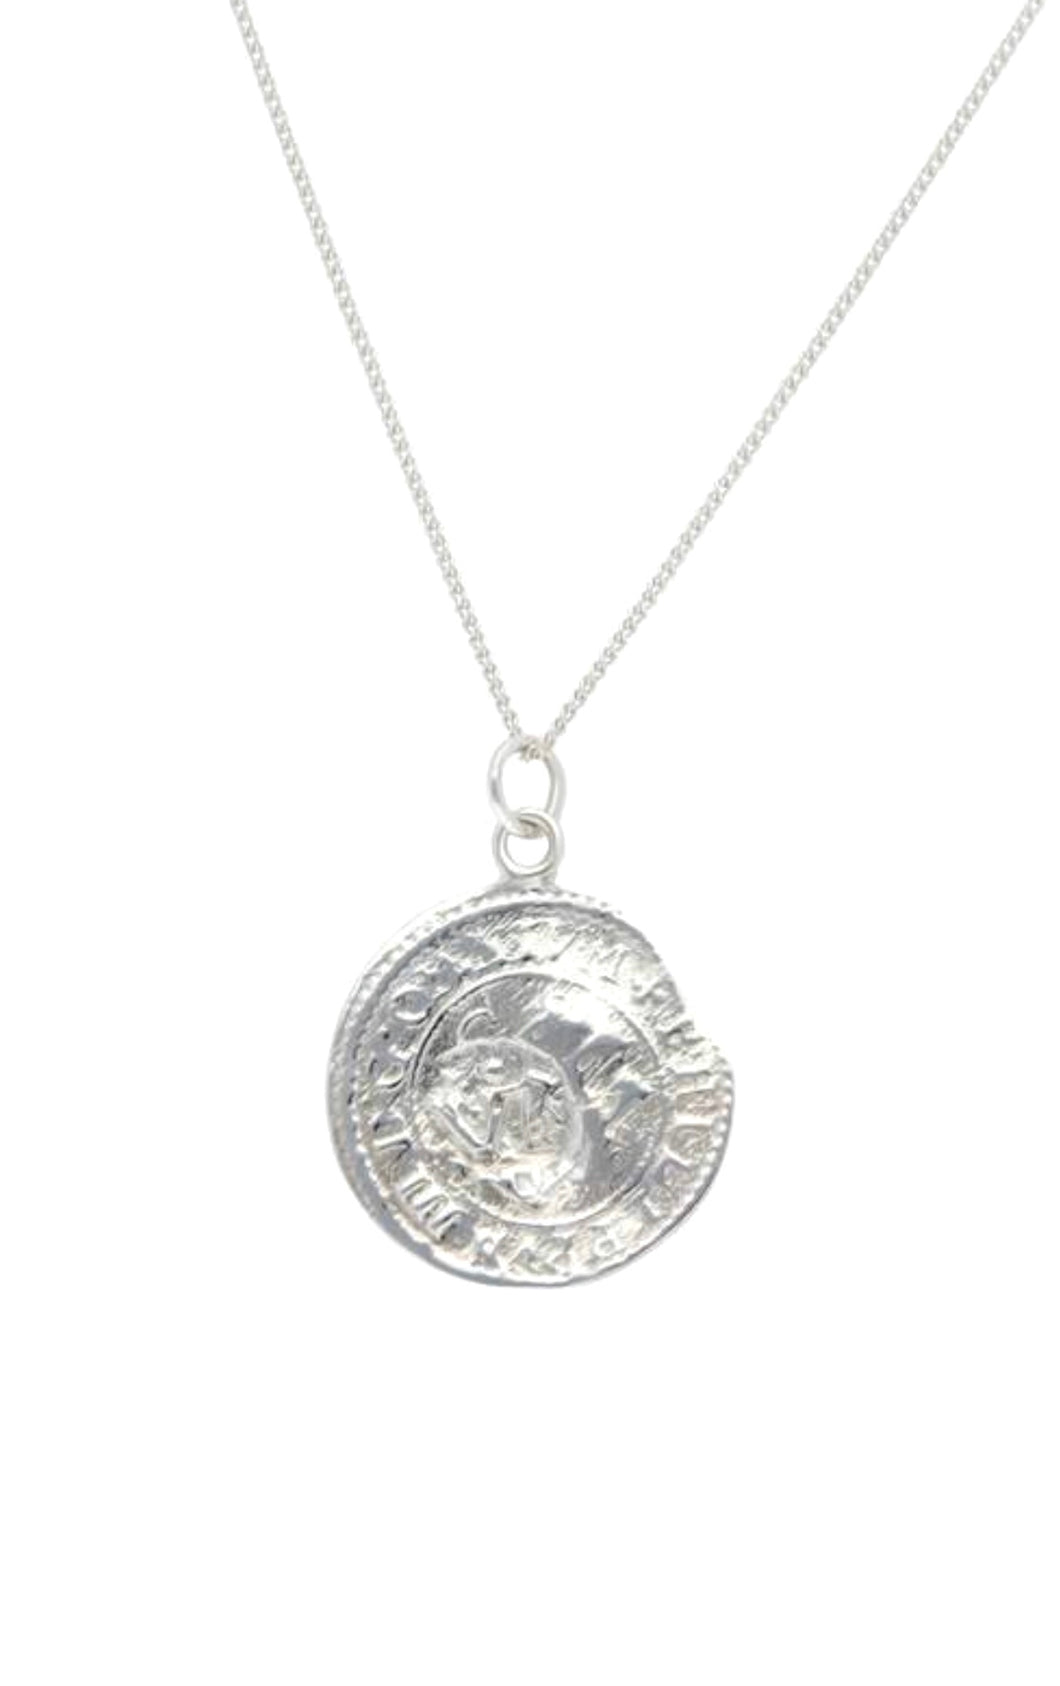 Silver coin pendant necklace sterling silver